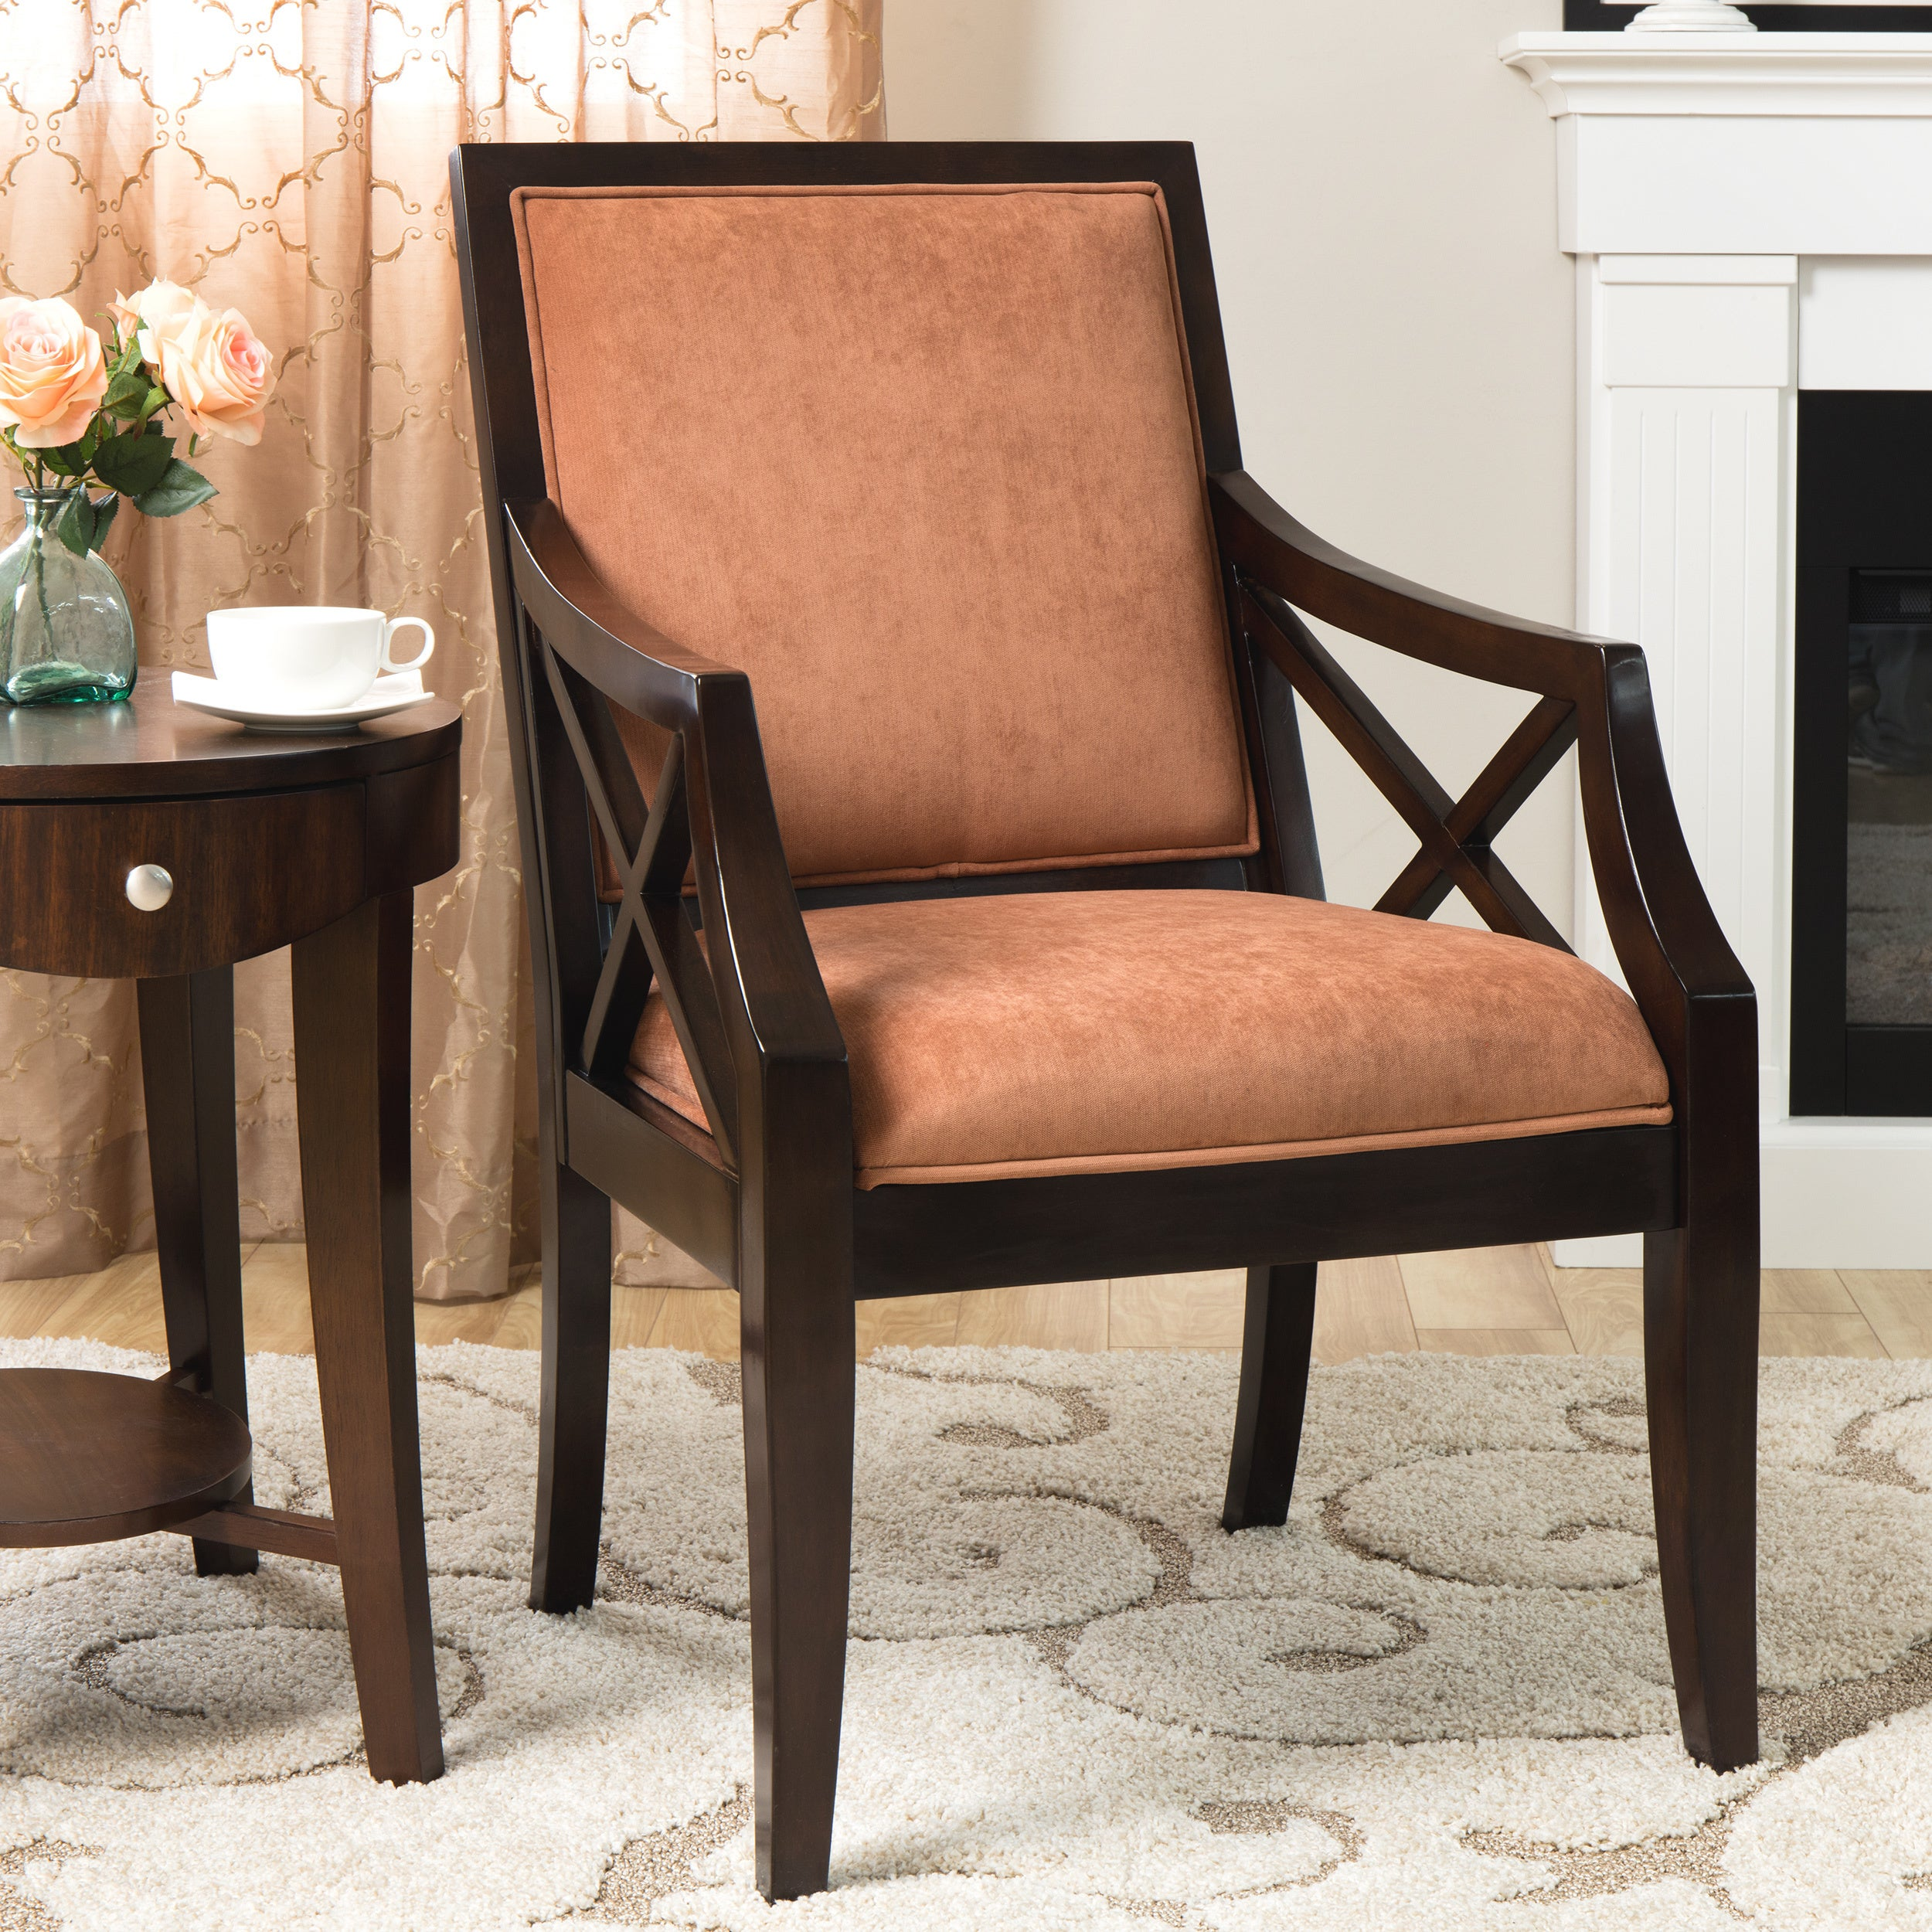 Seville Square Back Chair Brick   Free Shipping Today   Overstock   12318378